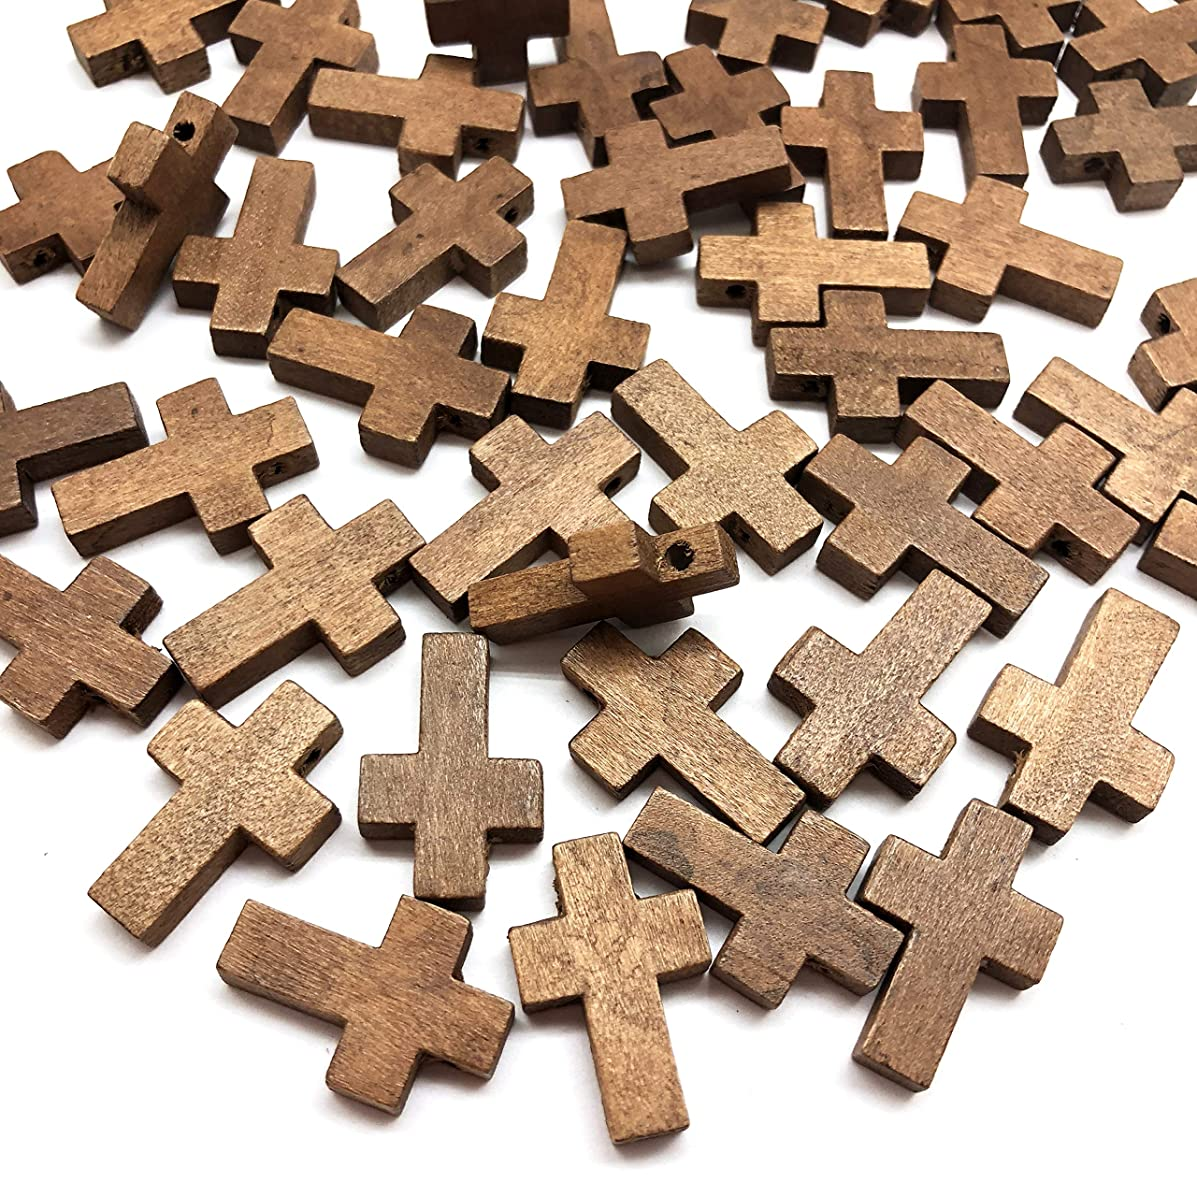 PEPPERLONELY 50PC Wooden Cross Spacer Beads 15x22mm(9/16 x 7/8 Inch)